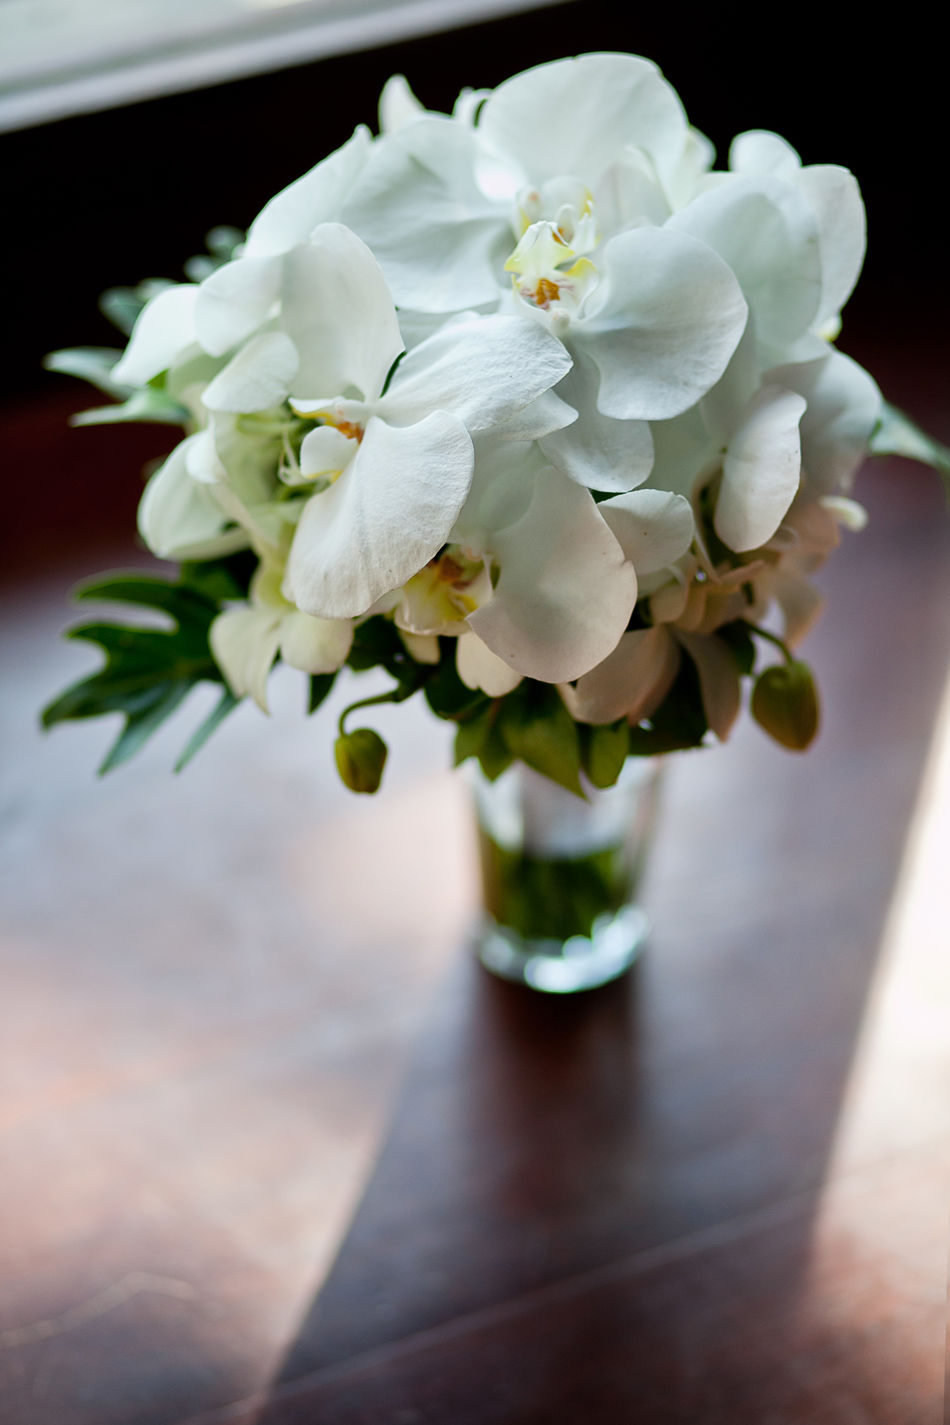 Bride's flower bouquet, White Orchids Beauty In Nature Bouquet Bride Close-up Day Flower Flower Head Fragility Freshness Growth Hand Bouquet Indoors  Light And Shadow Nature No People Petal Plant Table Vase Wedding White Orchid